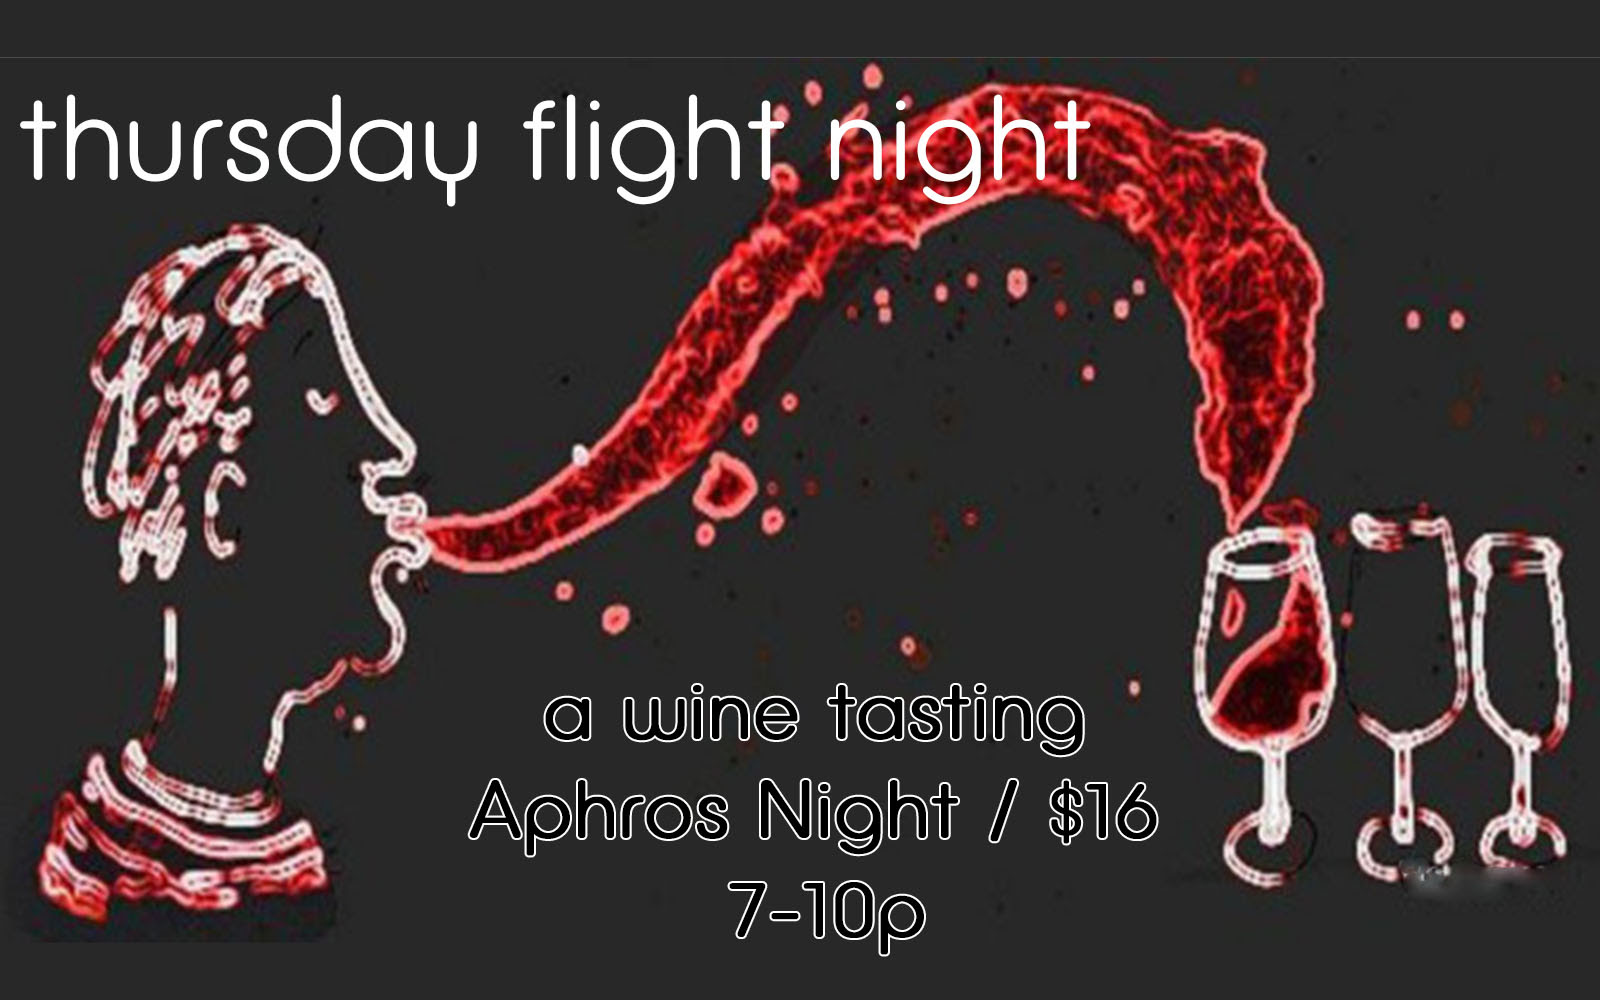 Aphros Wine Flight Night 8.21.14